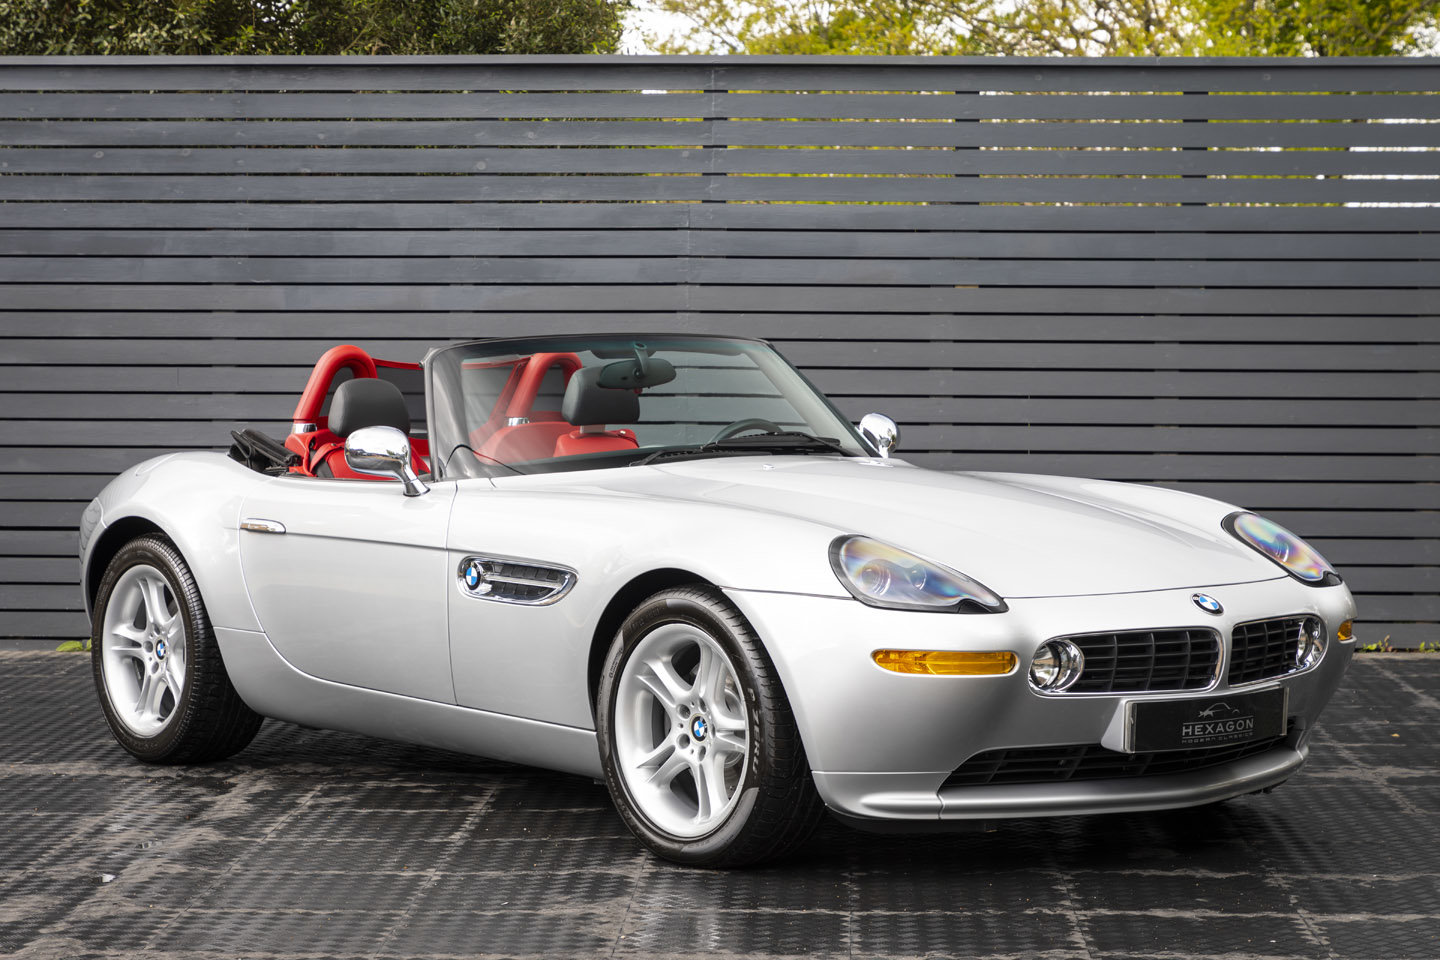 2001 BMW Z8 Roadster ONLY 10500 MILES UK CAR For Sale (picture 1 of 22)